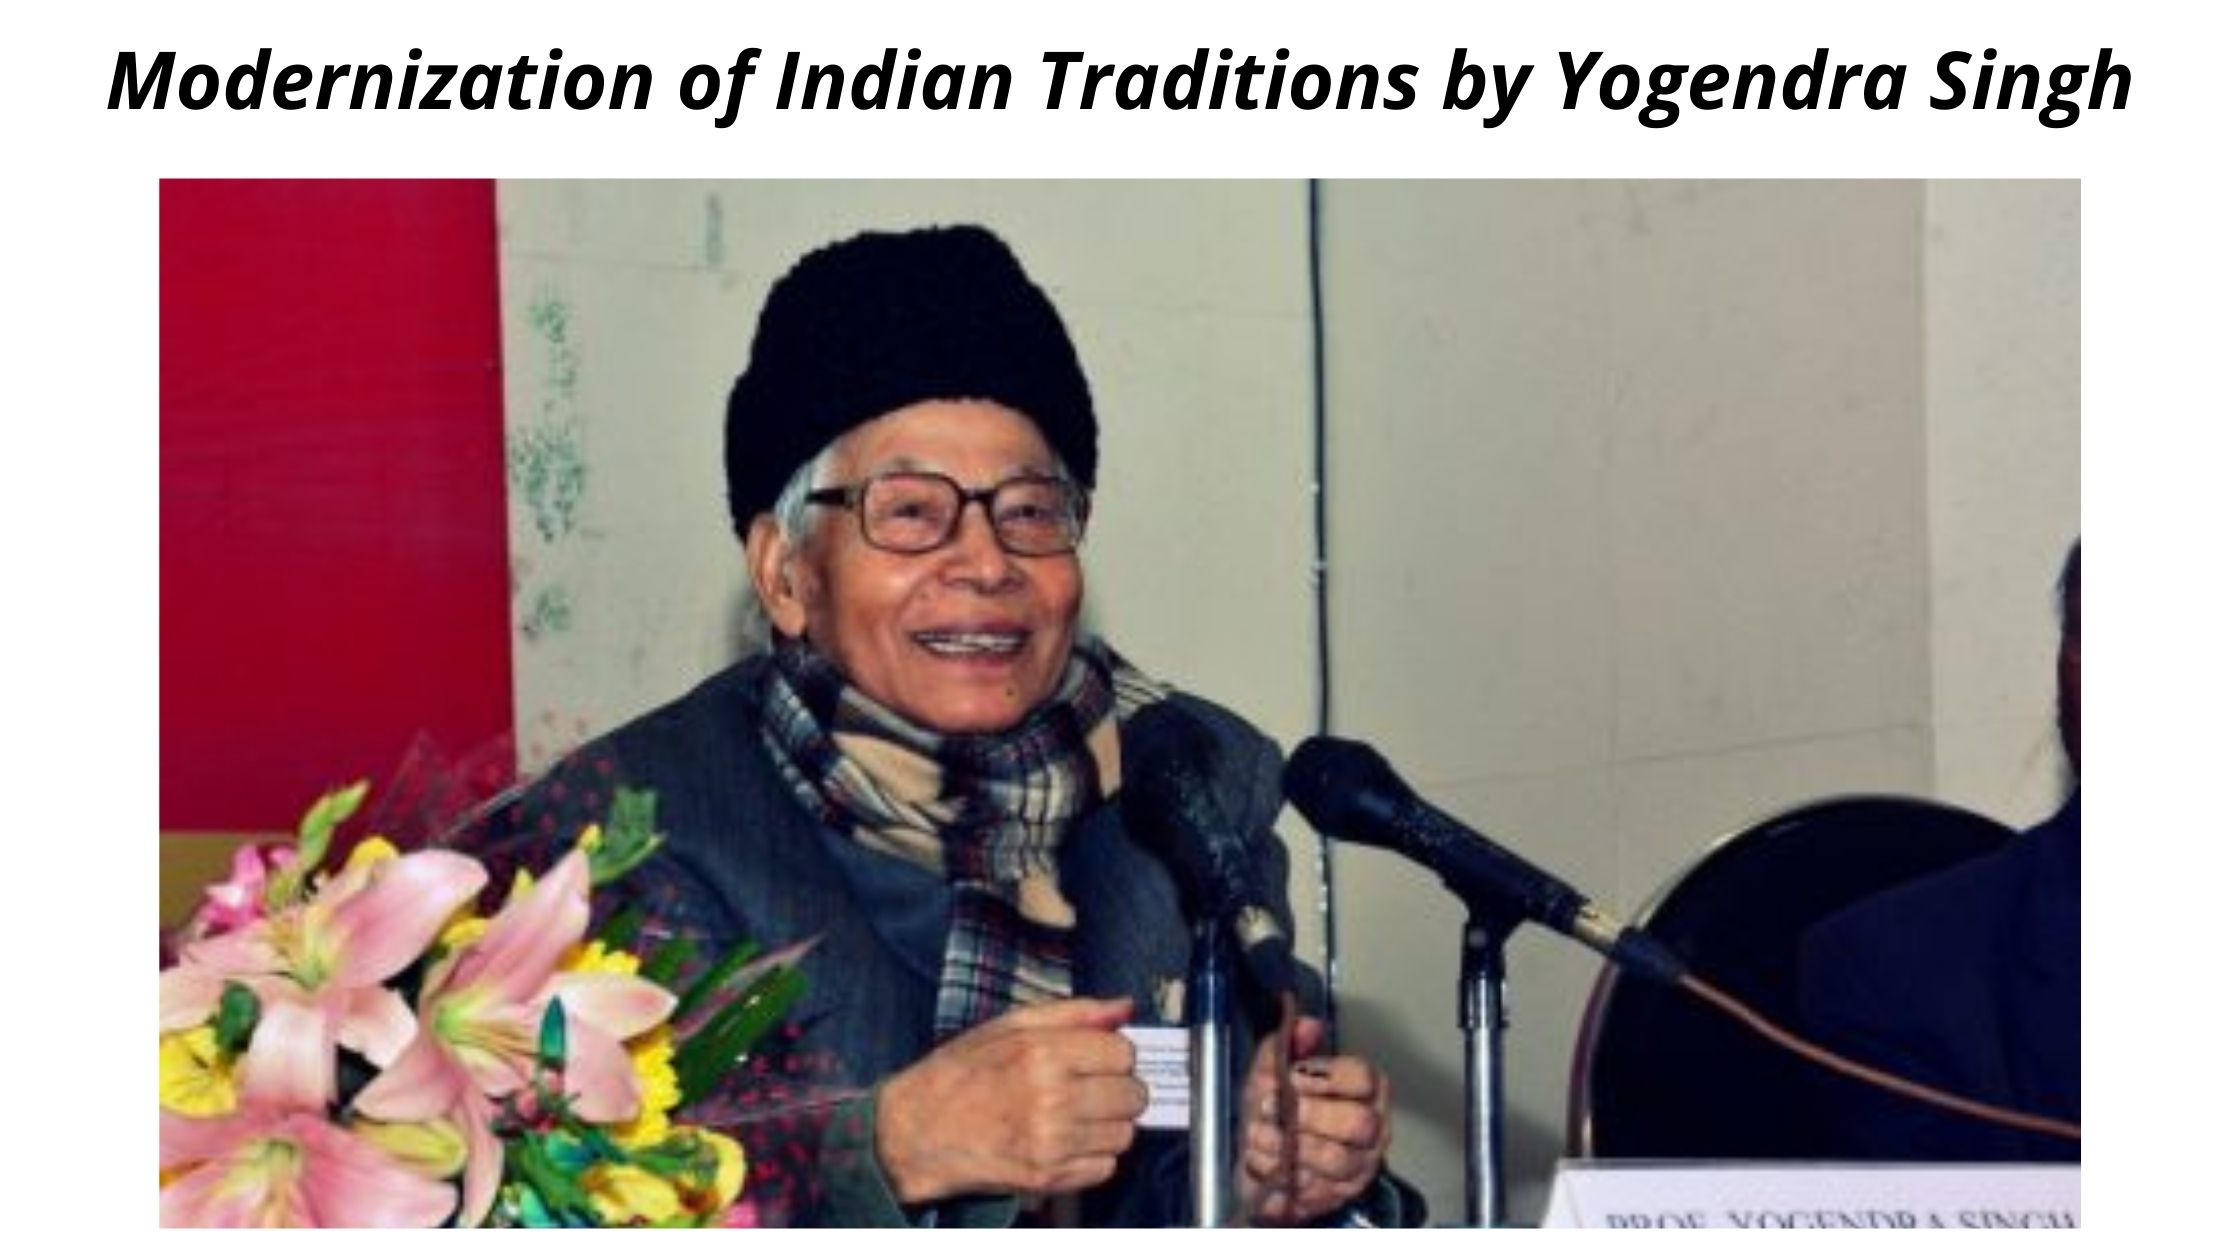 Modernization of Indian Traditions by Yogendra Singh: Summary